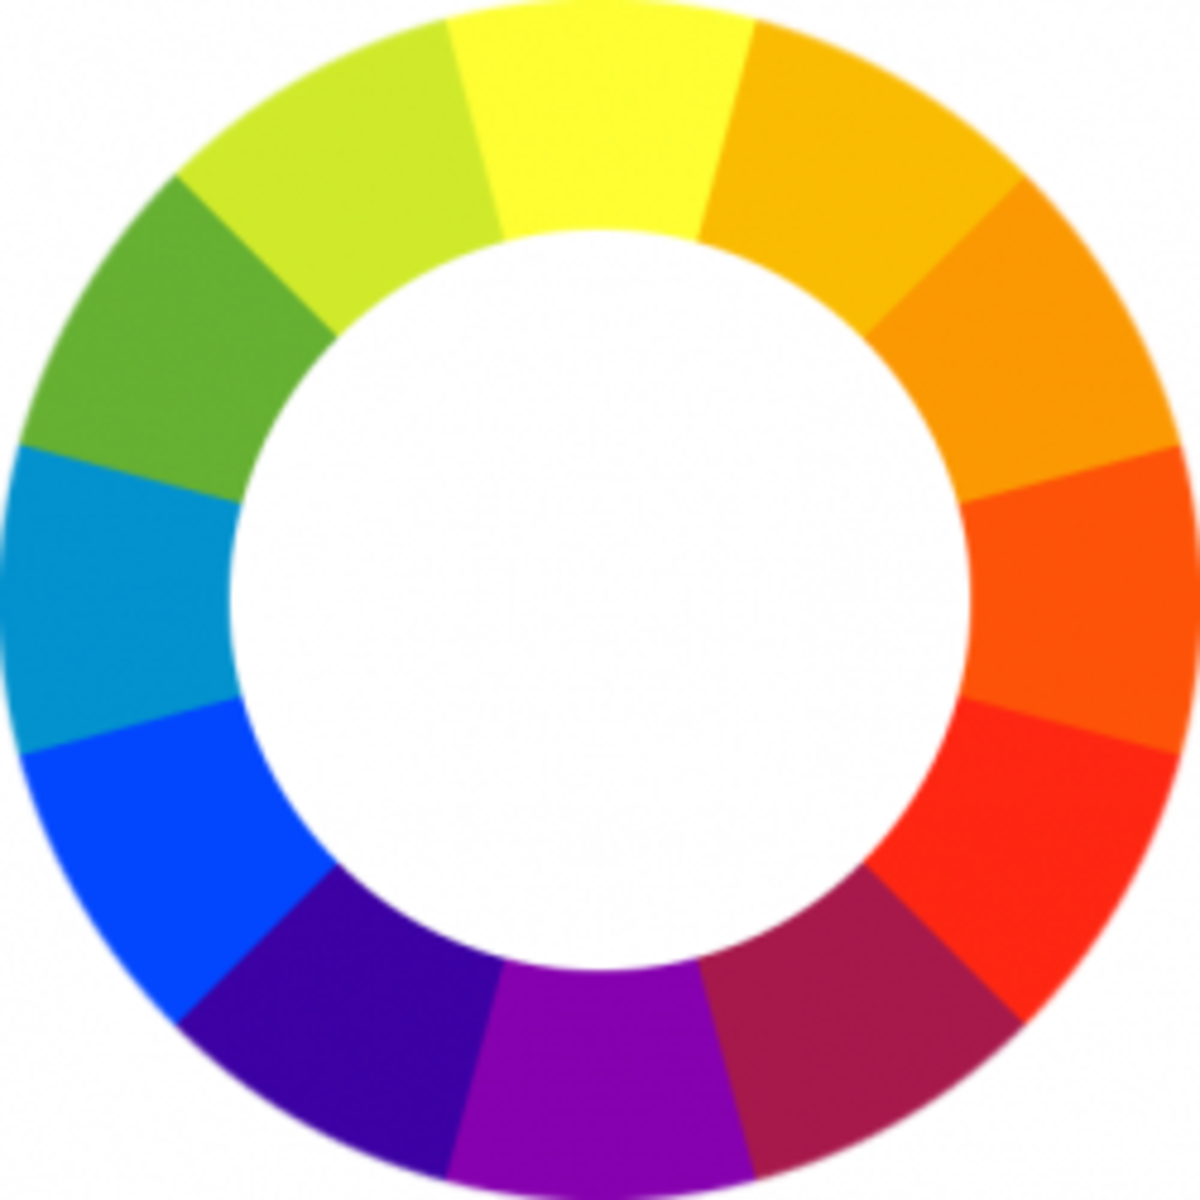 Colos of the rainbow with intermediate hues between ROYGBIV